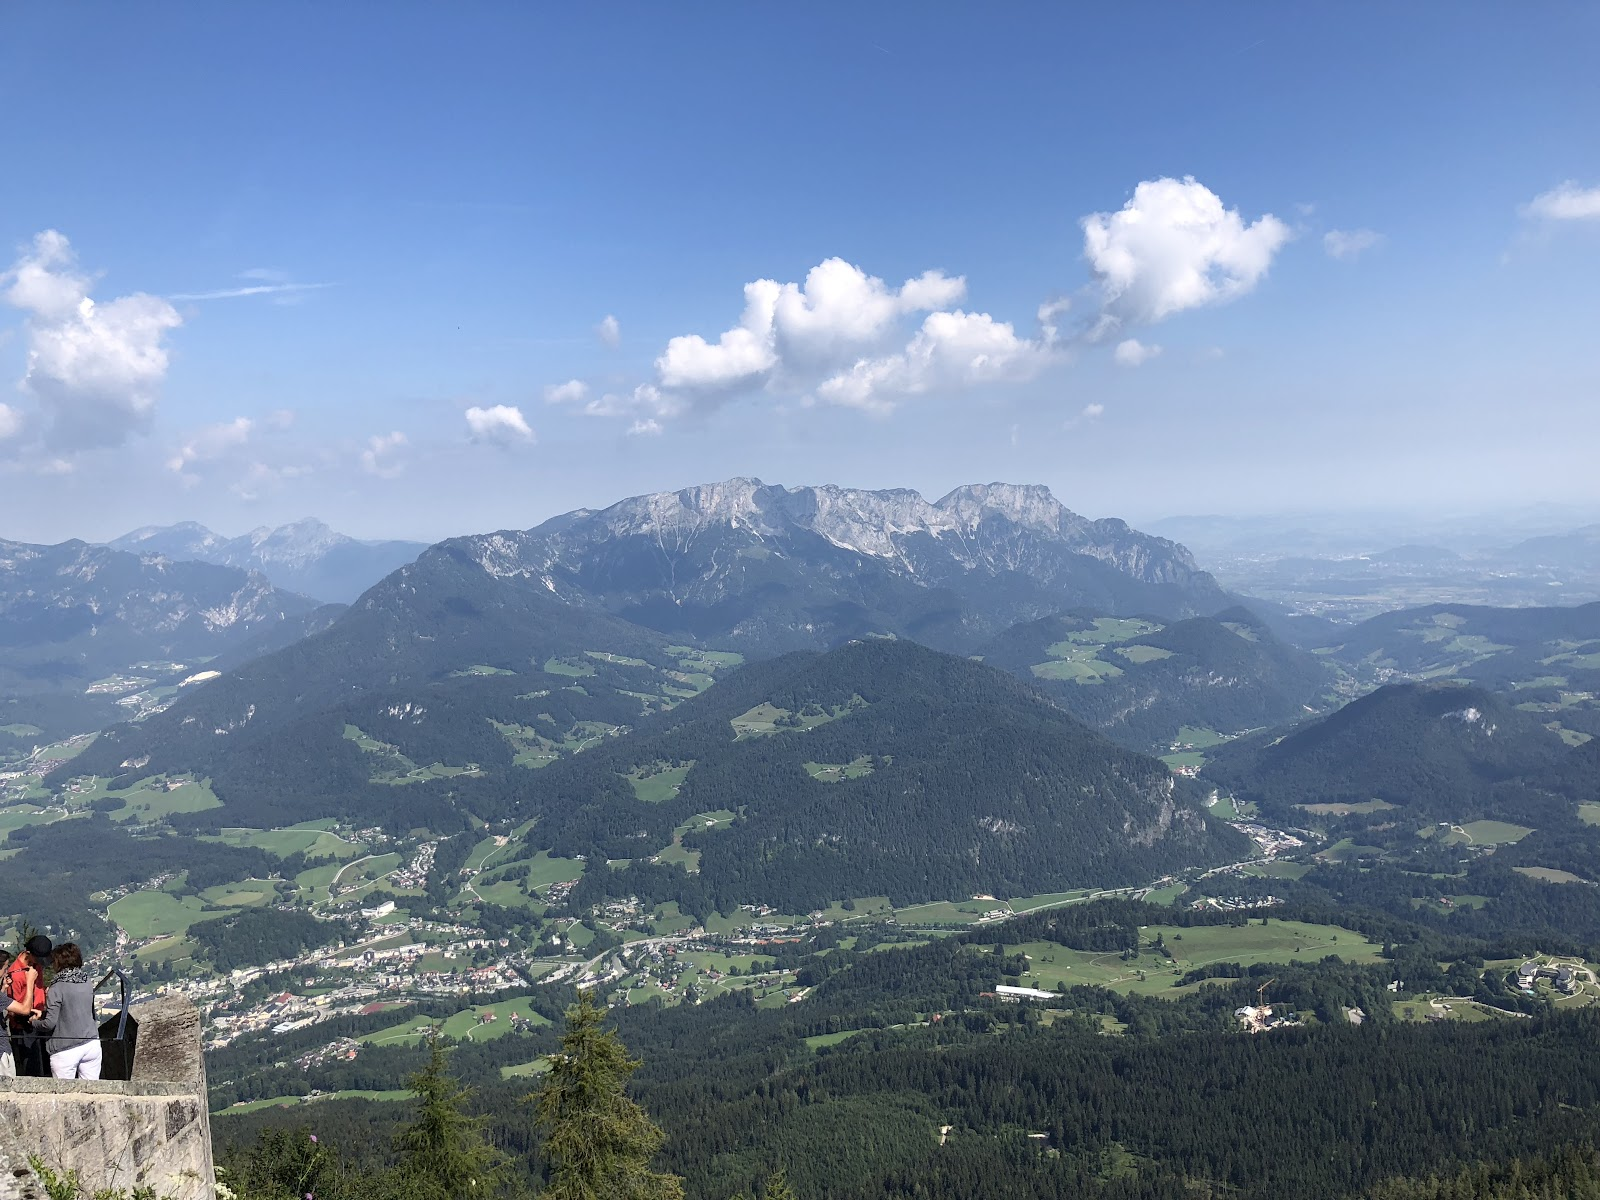 Bicycling to Eagles Nest - view of valley and mountains from top